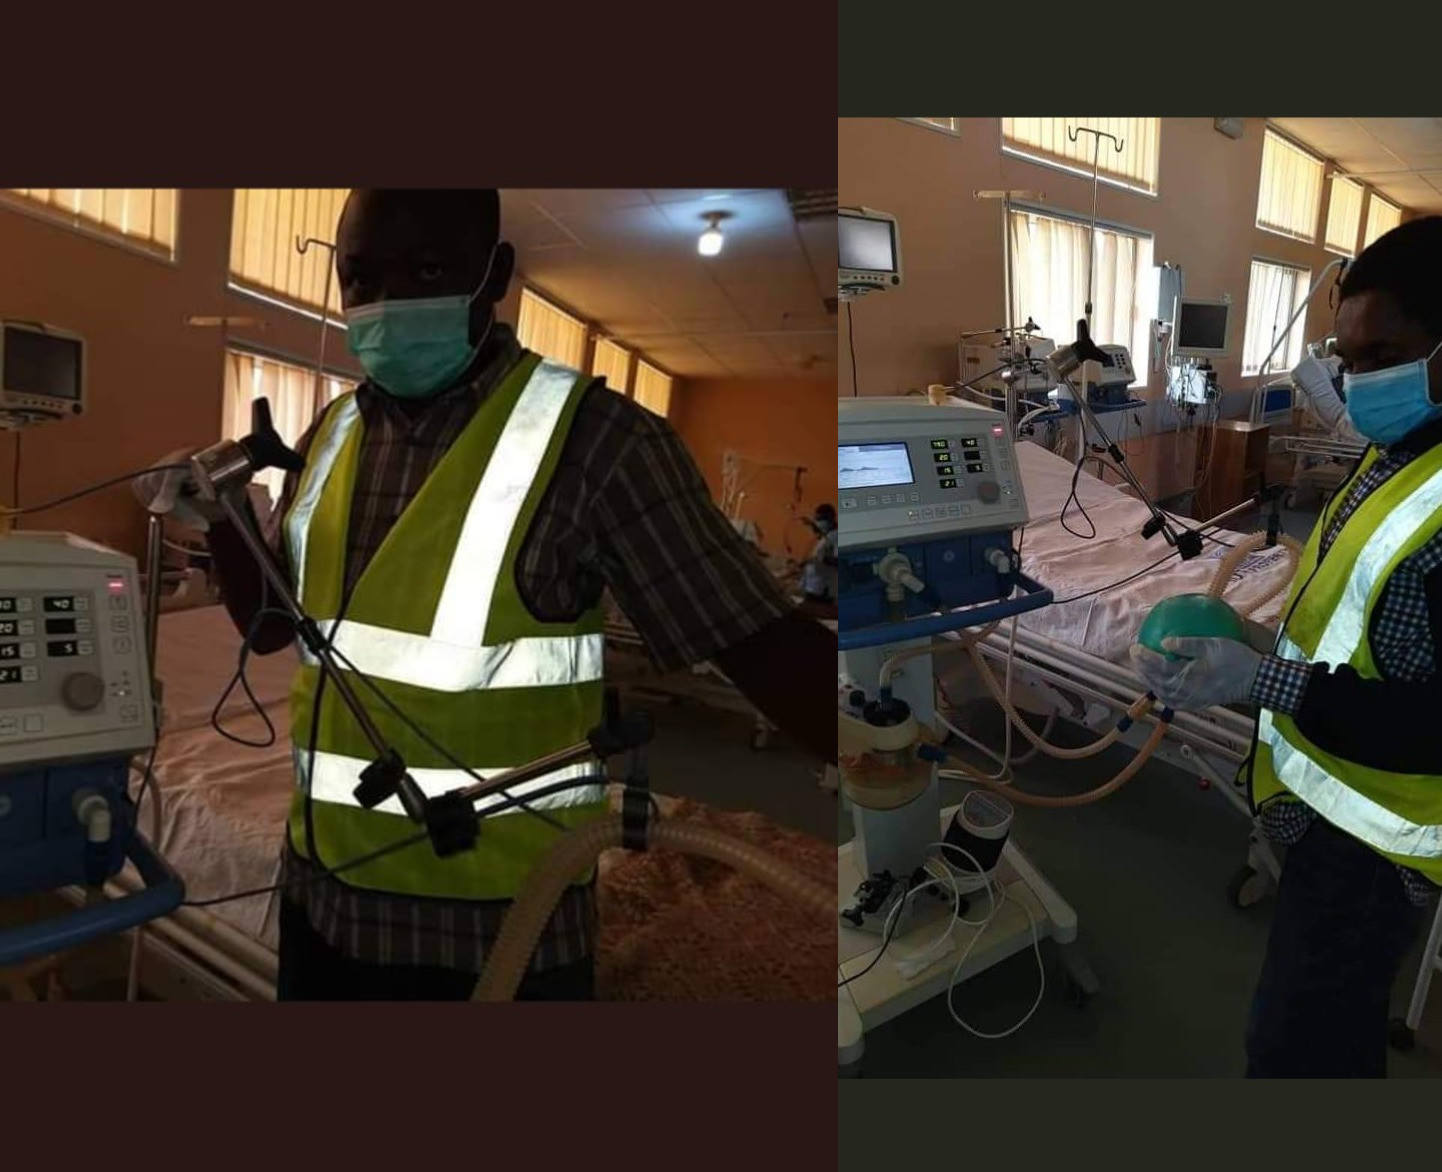 Two Nigerian men hailed as heroes after they fixed faulty ventilators for free as their contribution to curb Coronavirus